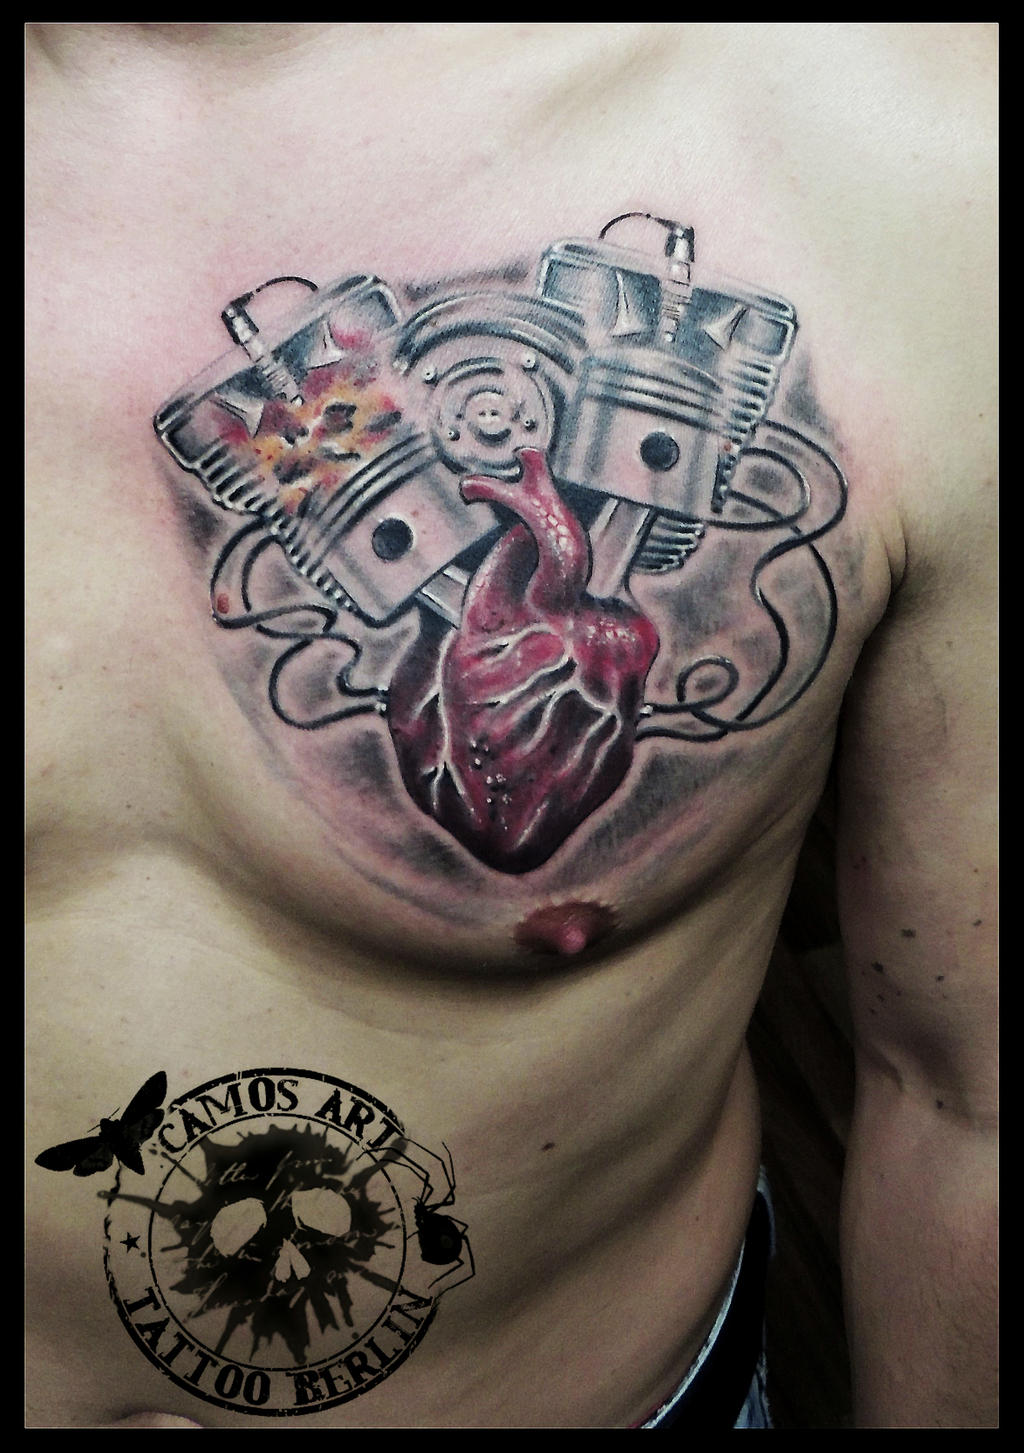 Motor heart by CAMOSartTATTOO on DeviantArt